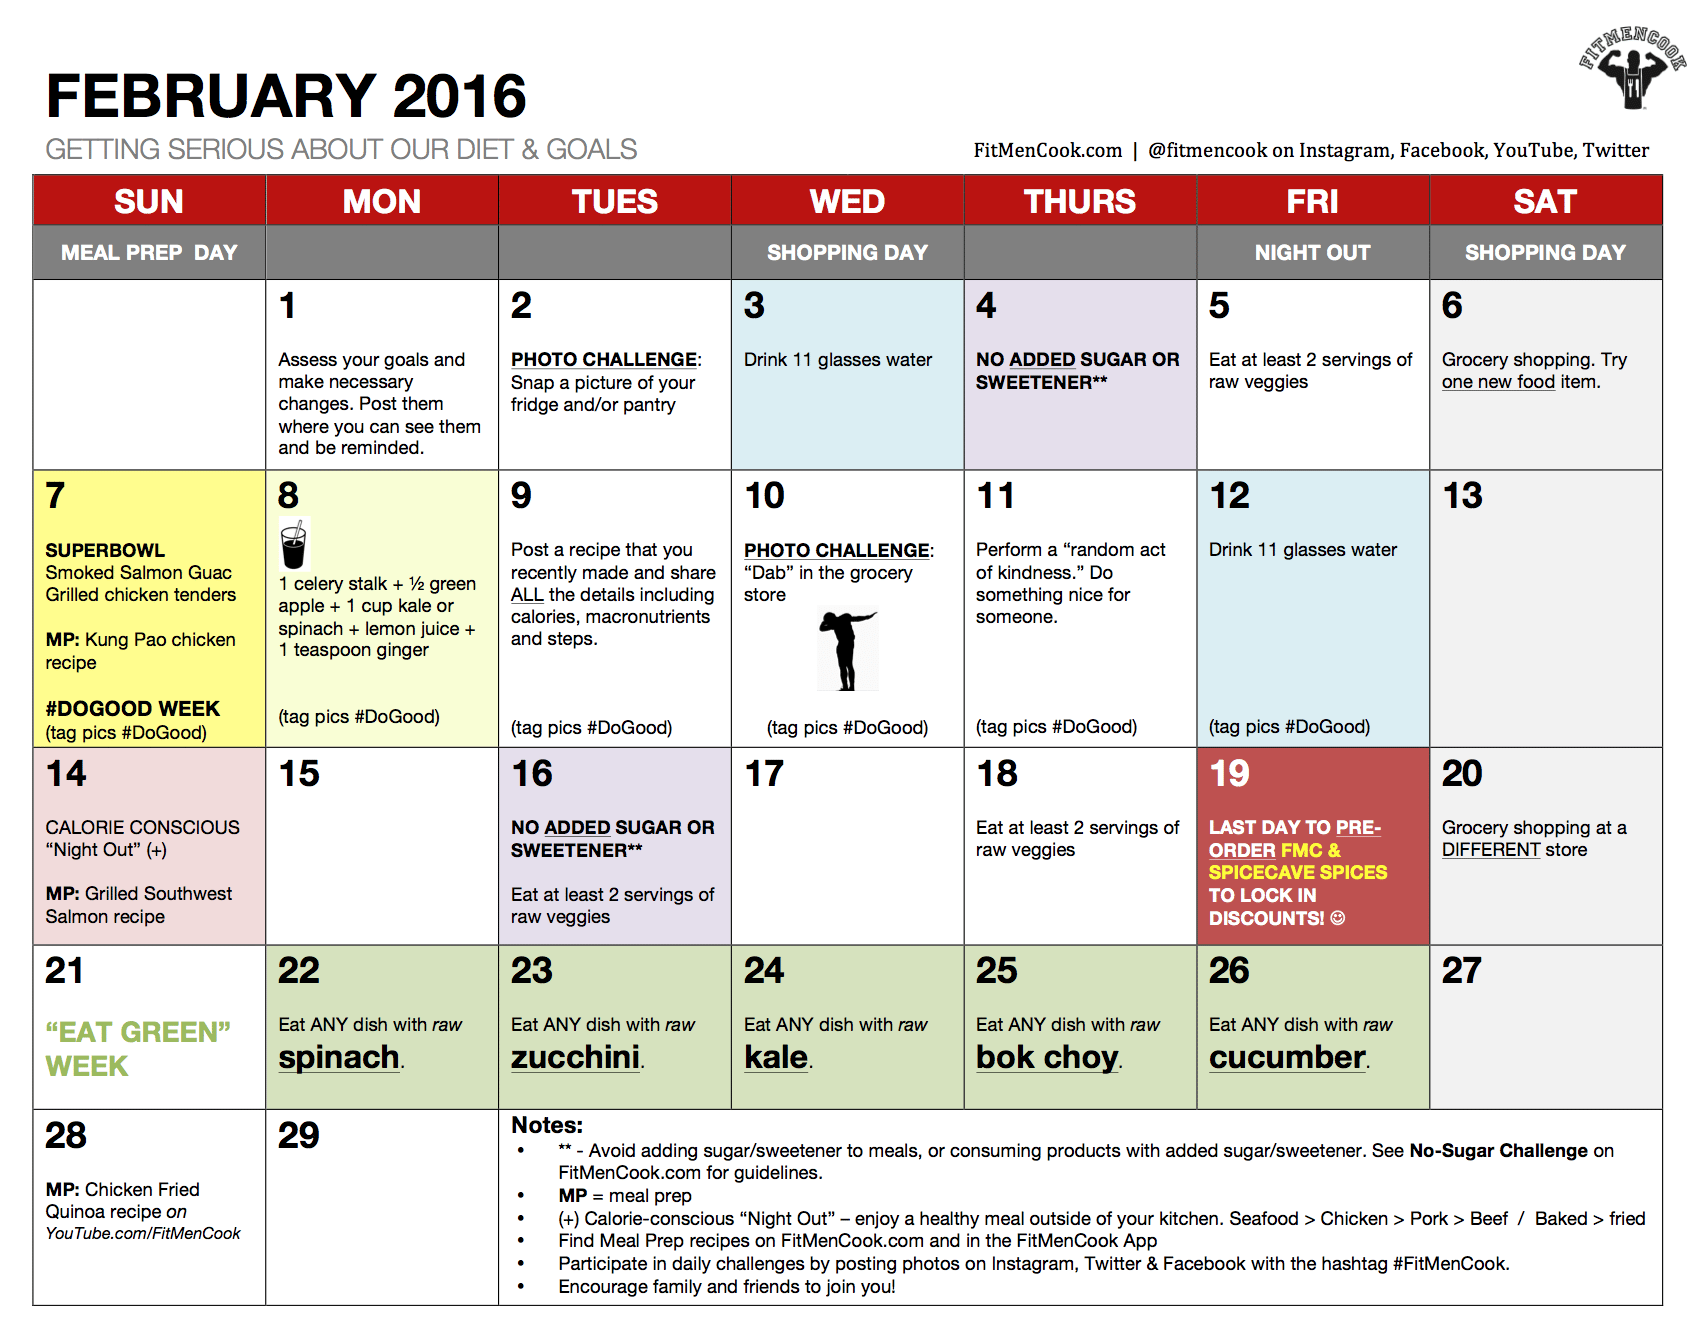 FEBRUARY 2016 HEALTHY CHALLENGE CALENDAR